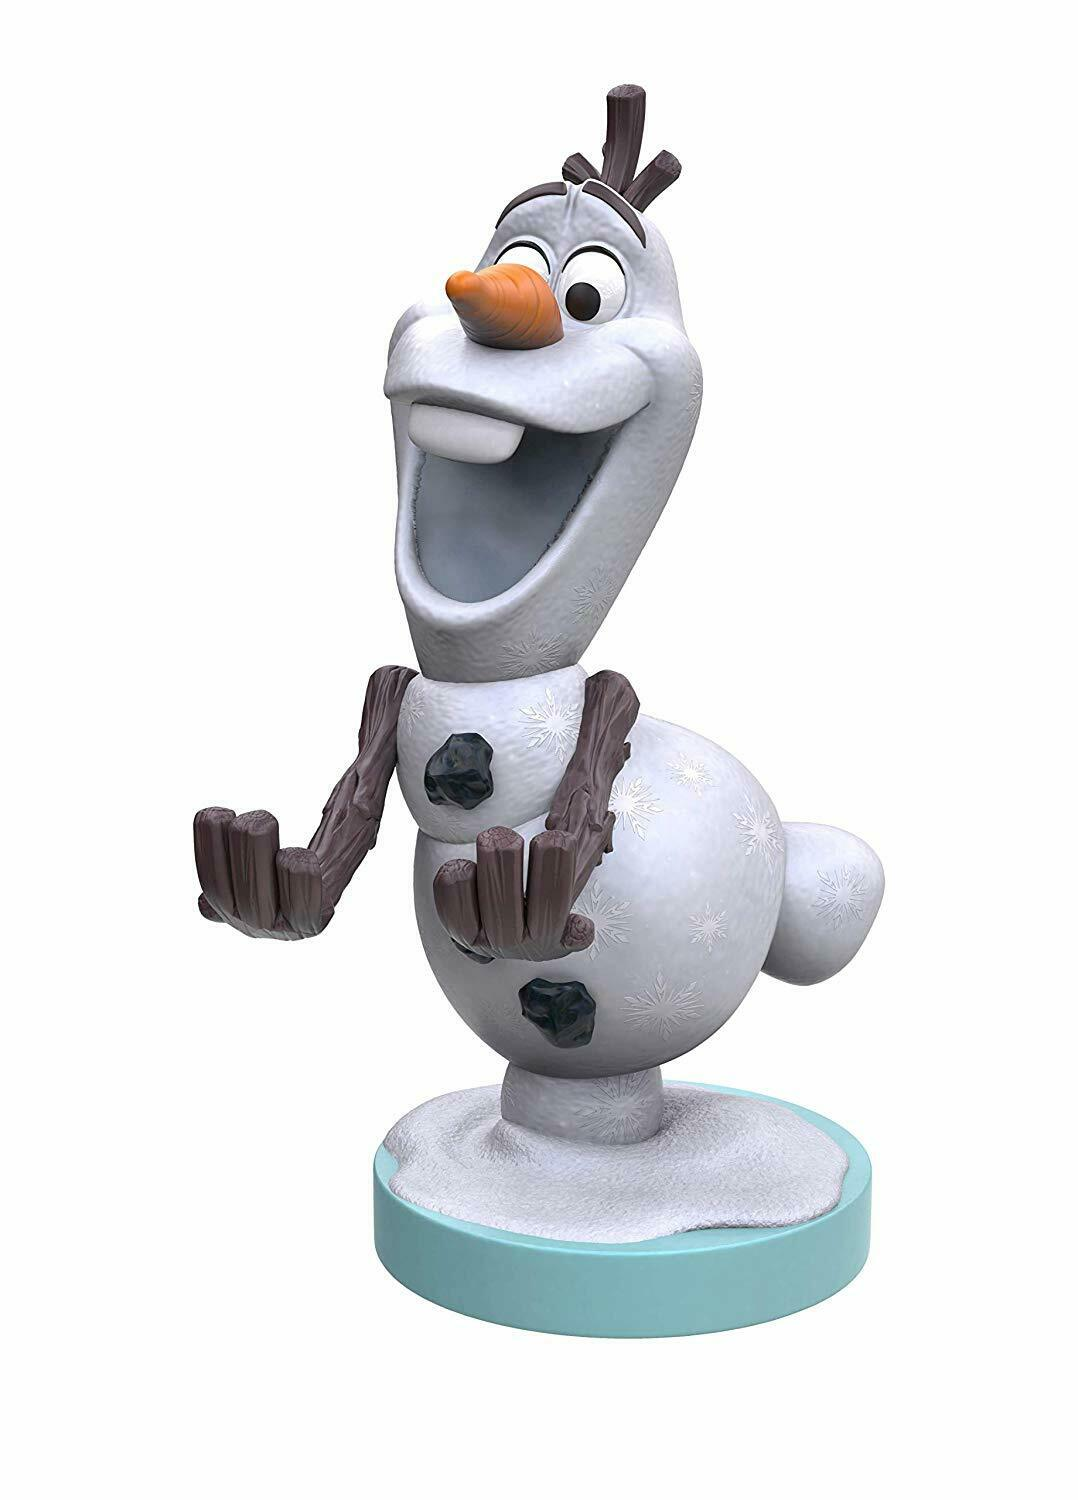 Cable Guys Controller Mobile Phone Device Holder Frozen 2 Olaf